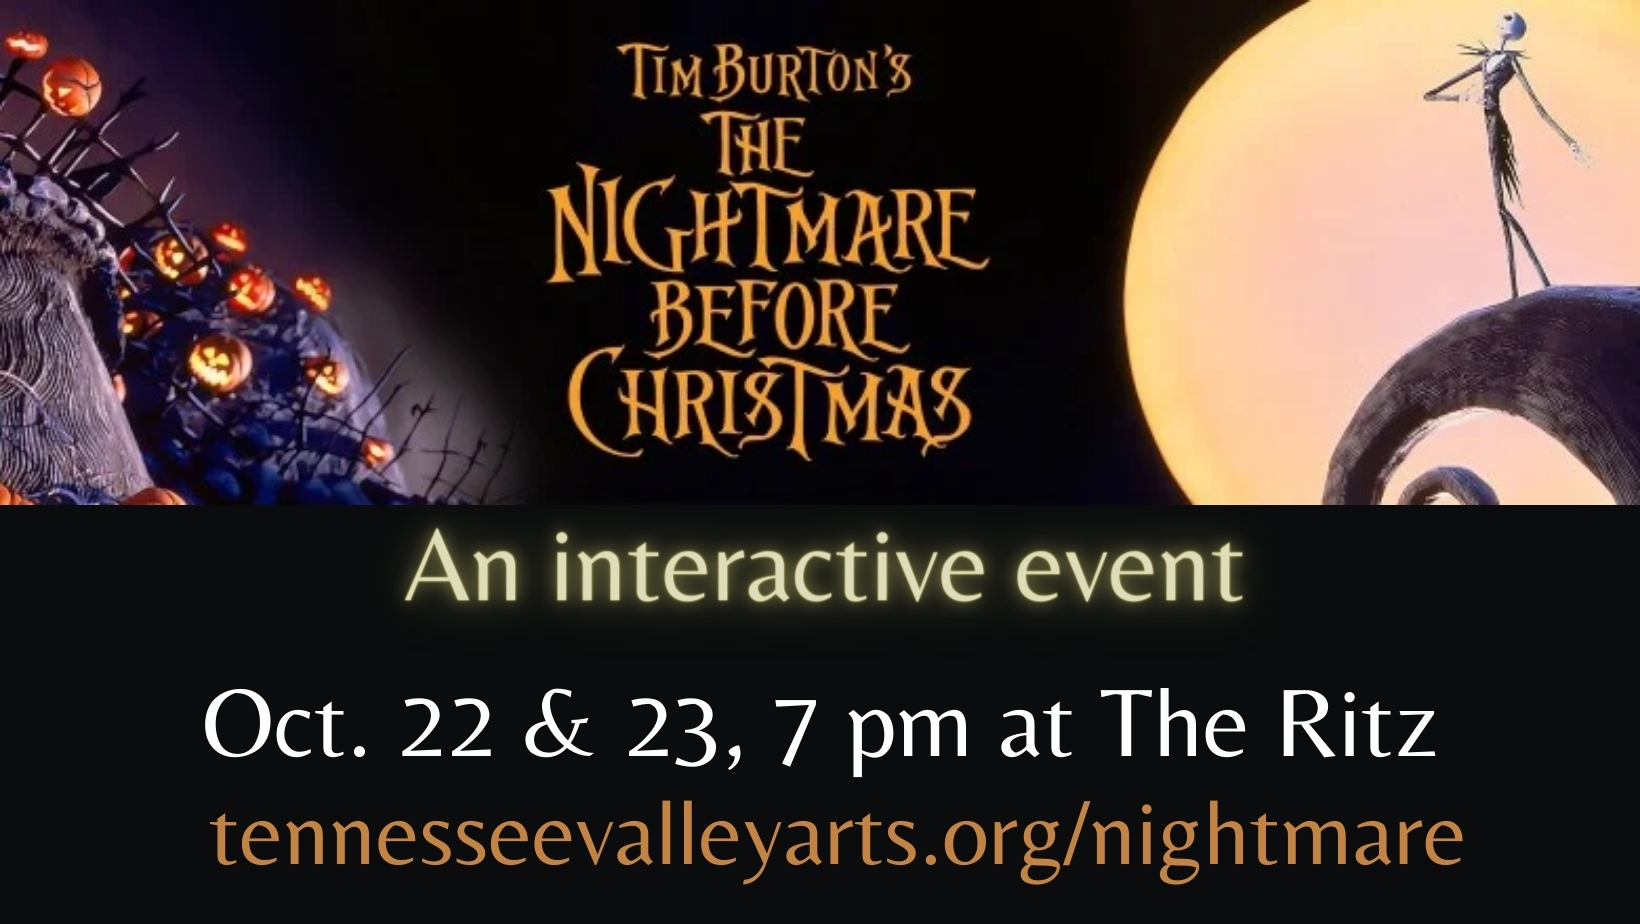 Tim Burton's The Nightmare Before Christmas - An Interactive Event - October 22 & 23, 7 pm at The Ritz tennseevalleyarts.org/nightmare